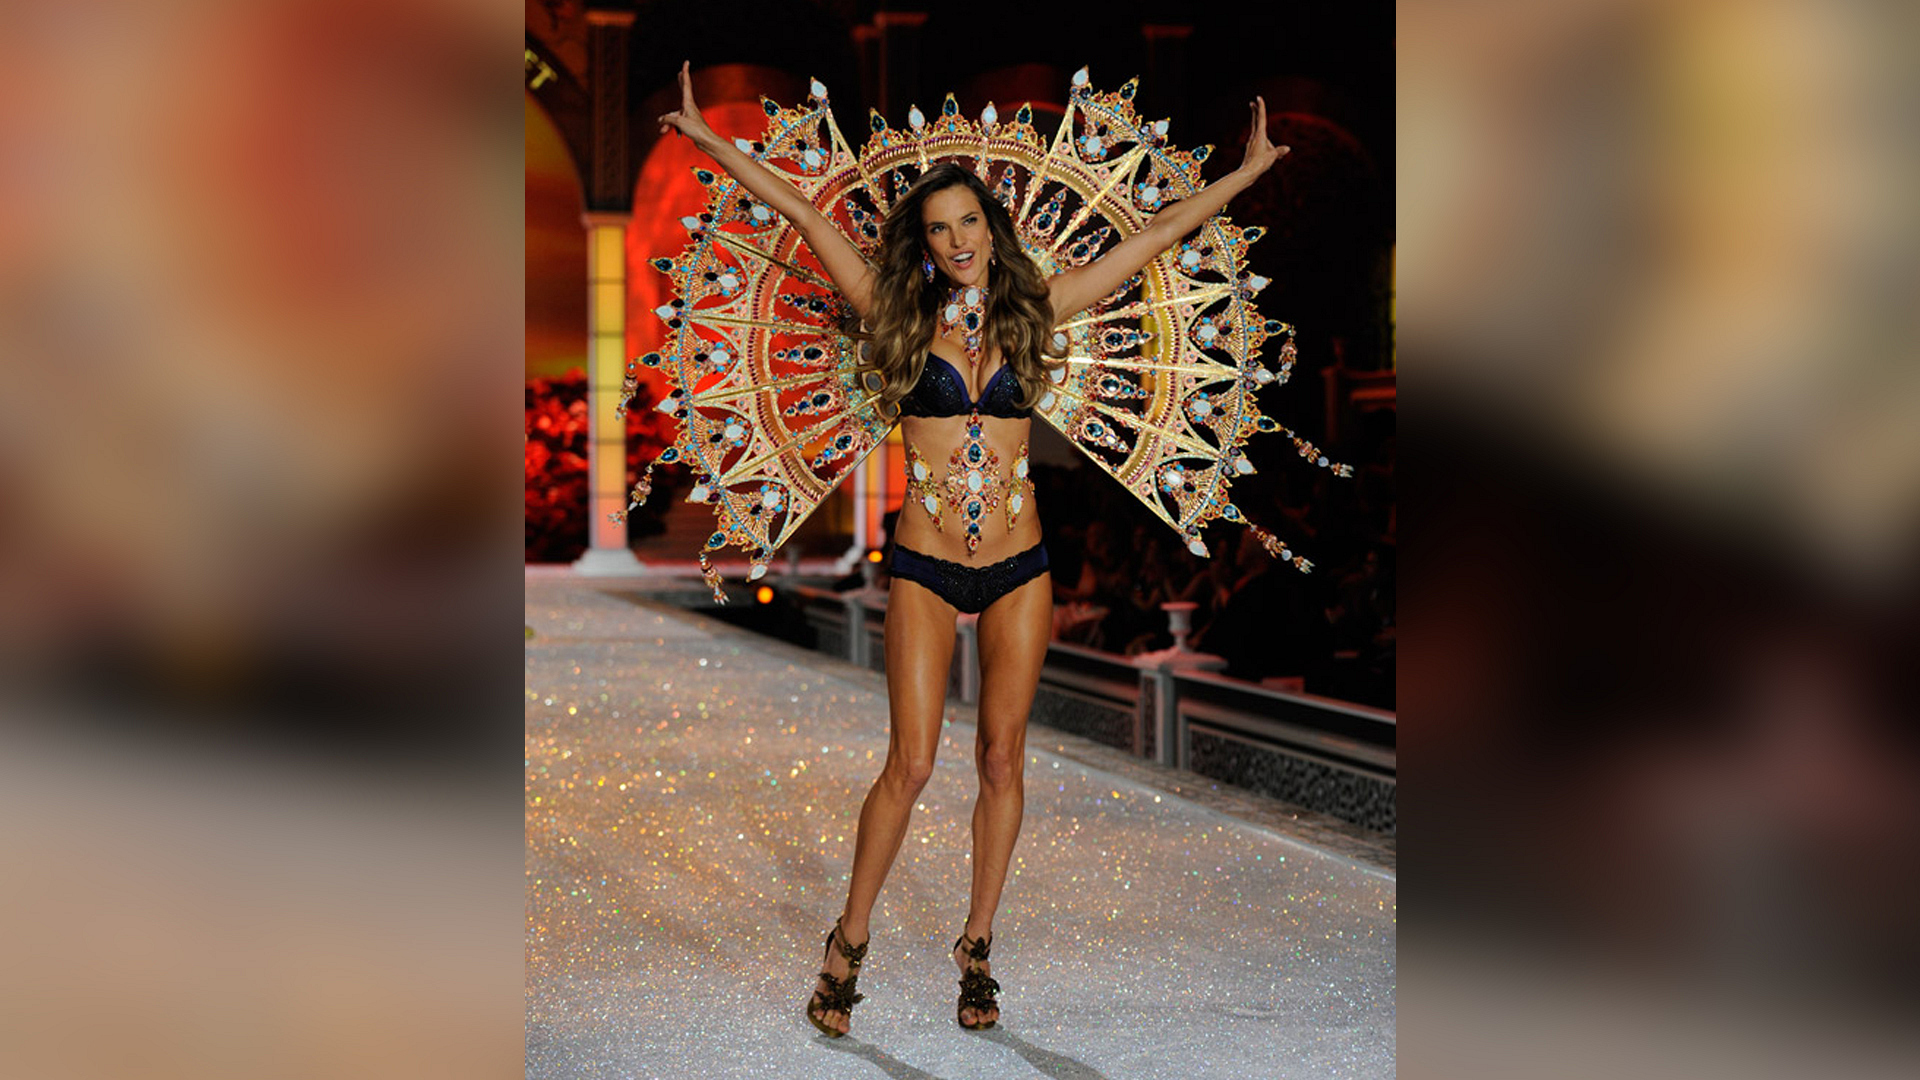 Alessandra Ambrosio's fan wings blew the audience away.